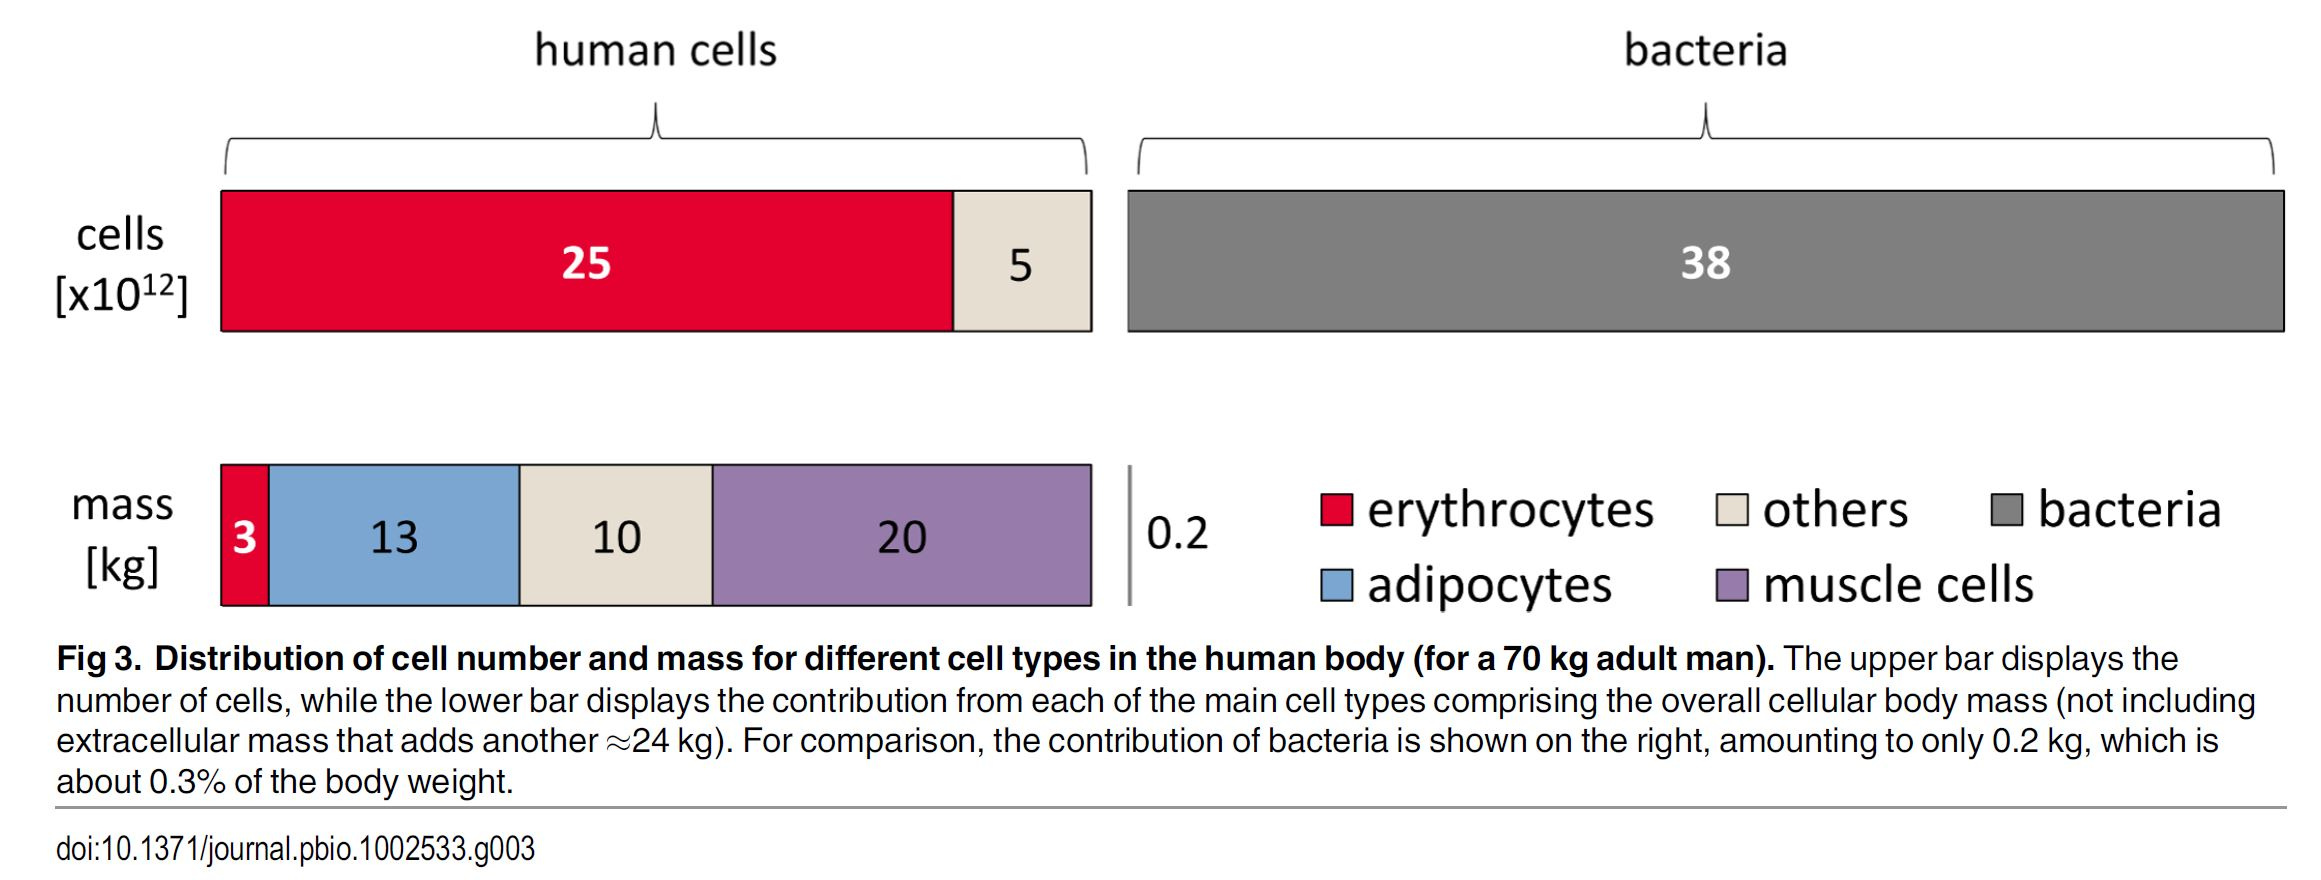 Bacterial vs Human cells in our body